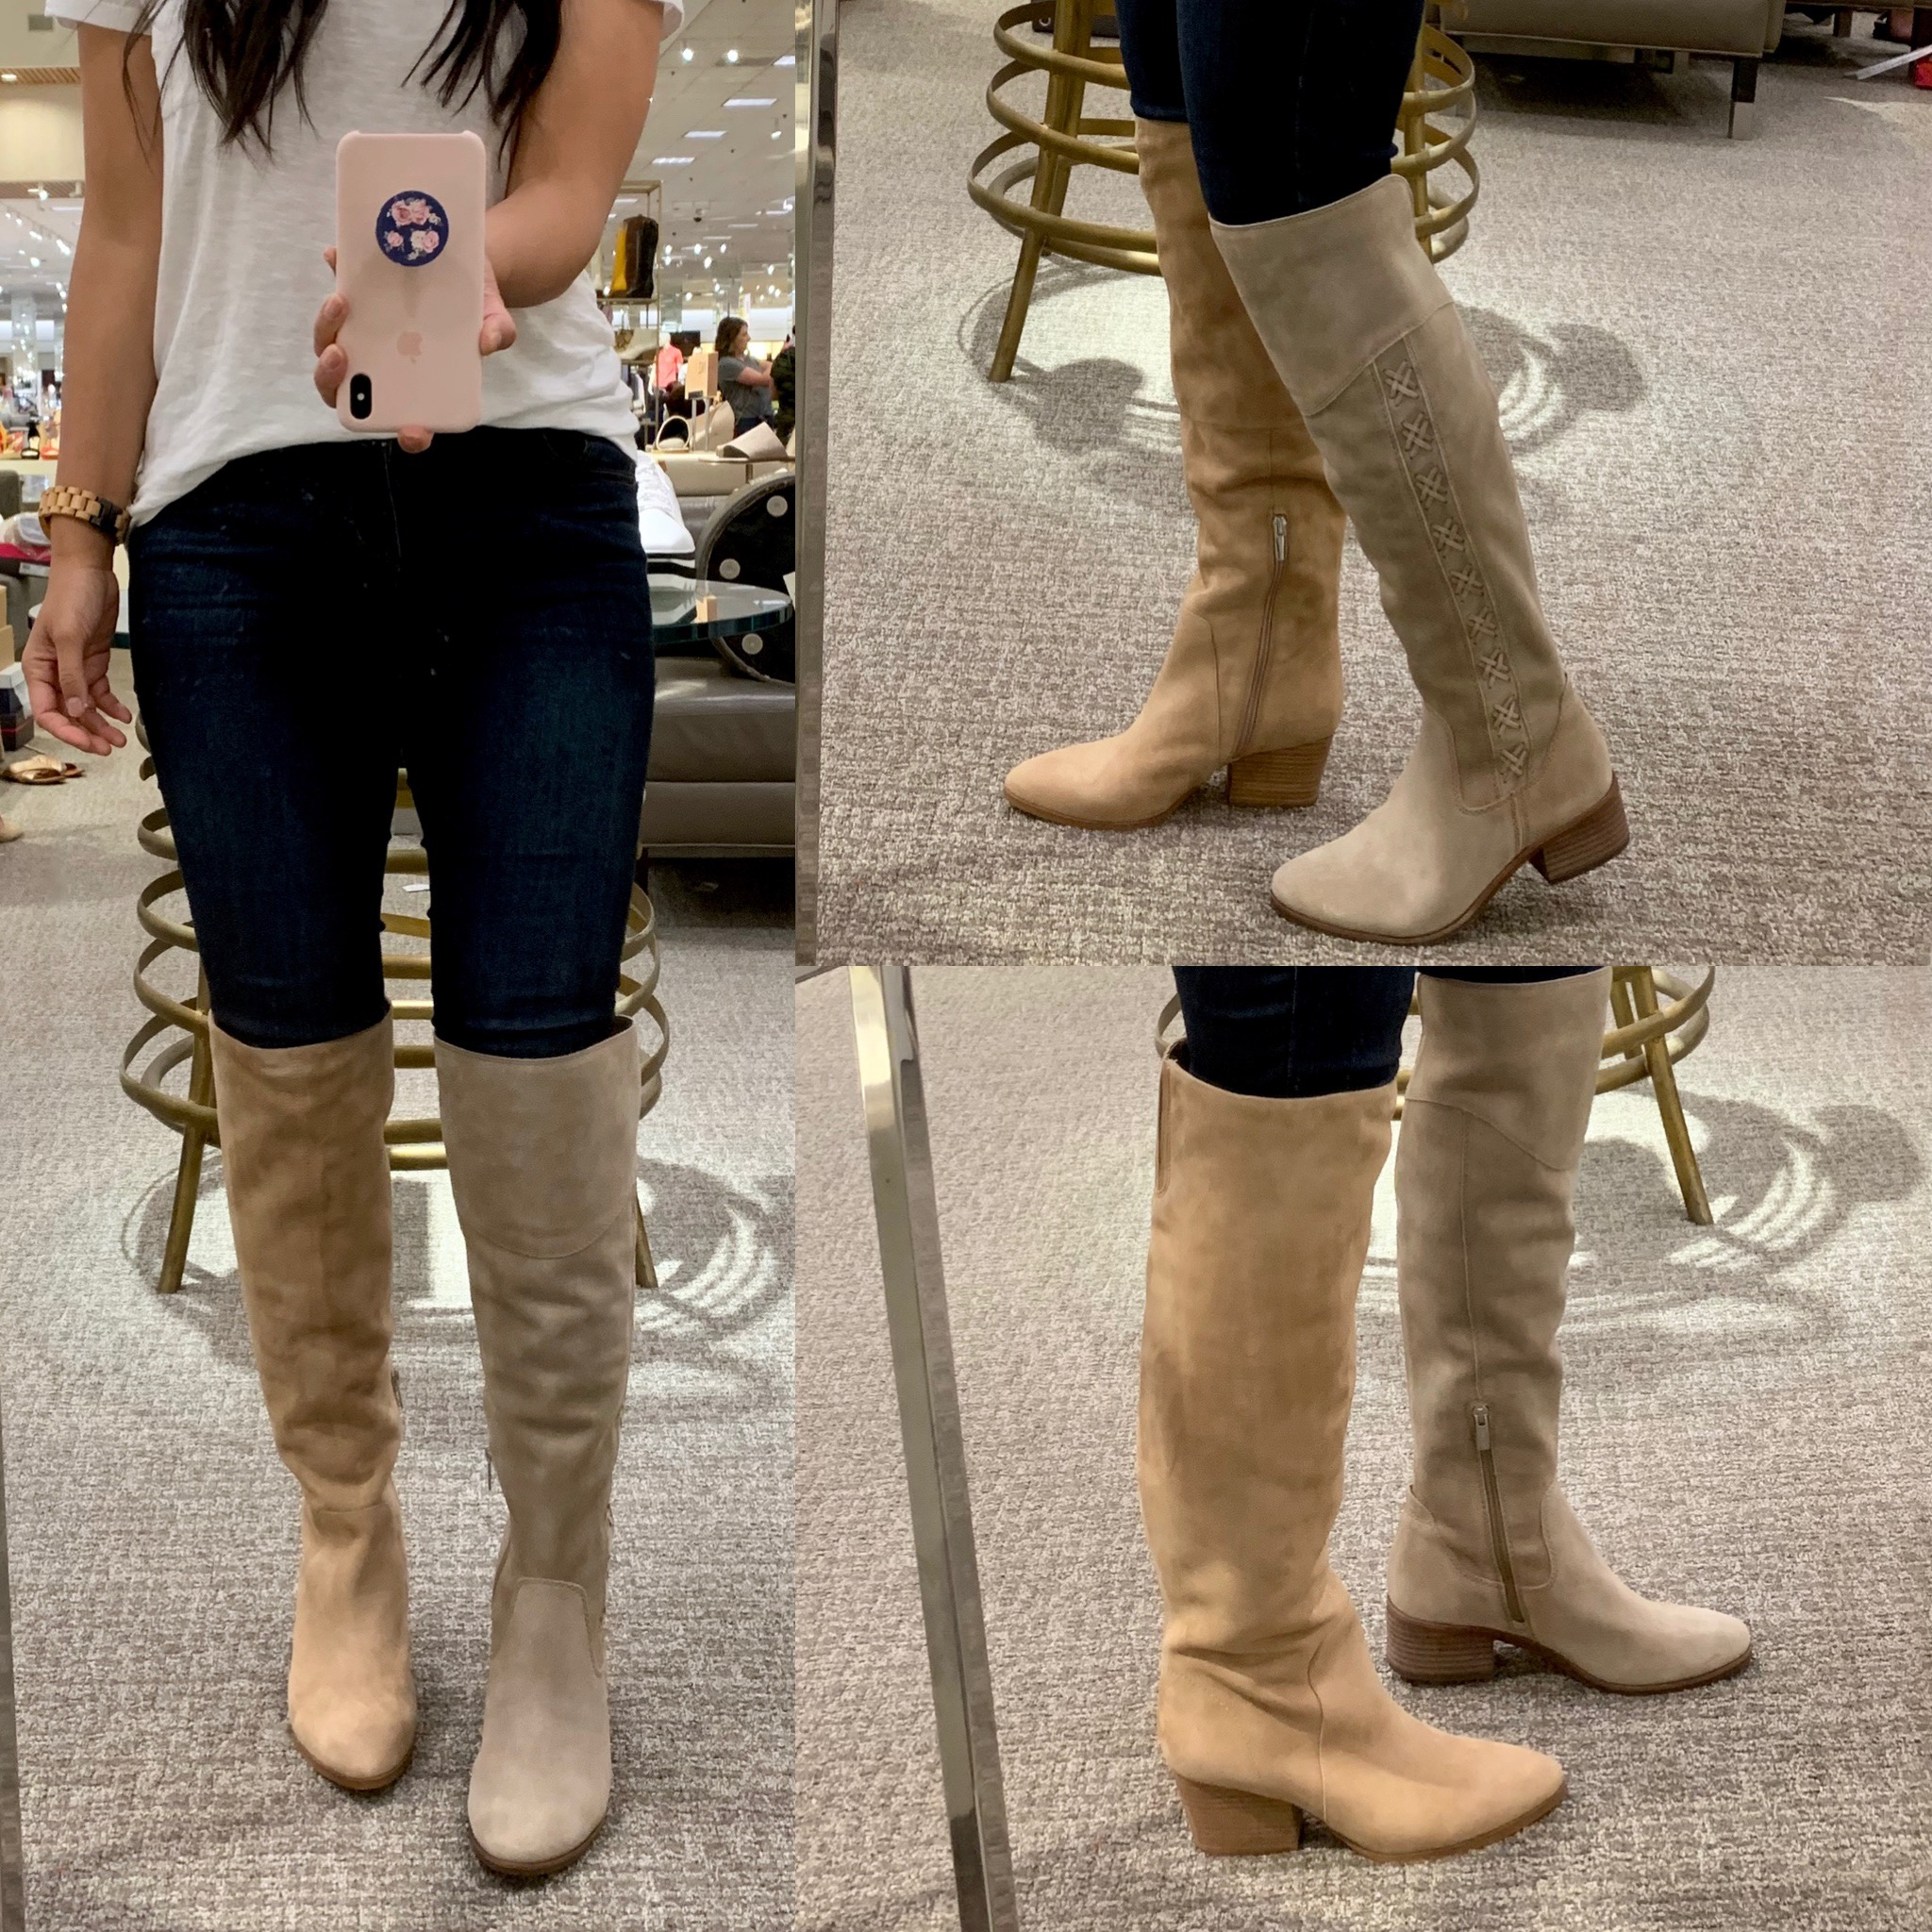 Review of Vince Camuto Taupe Suede Boots